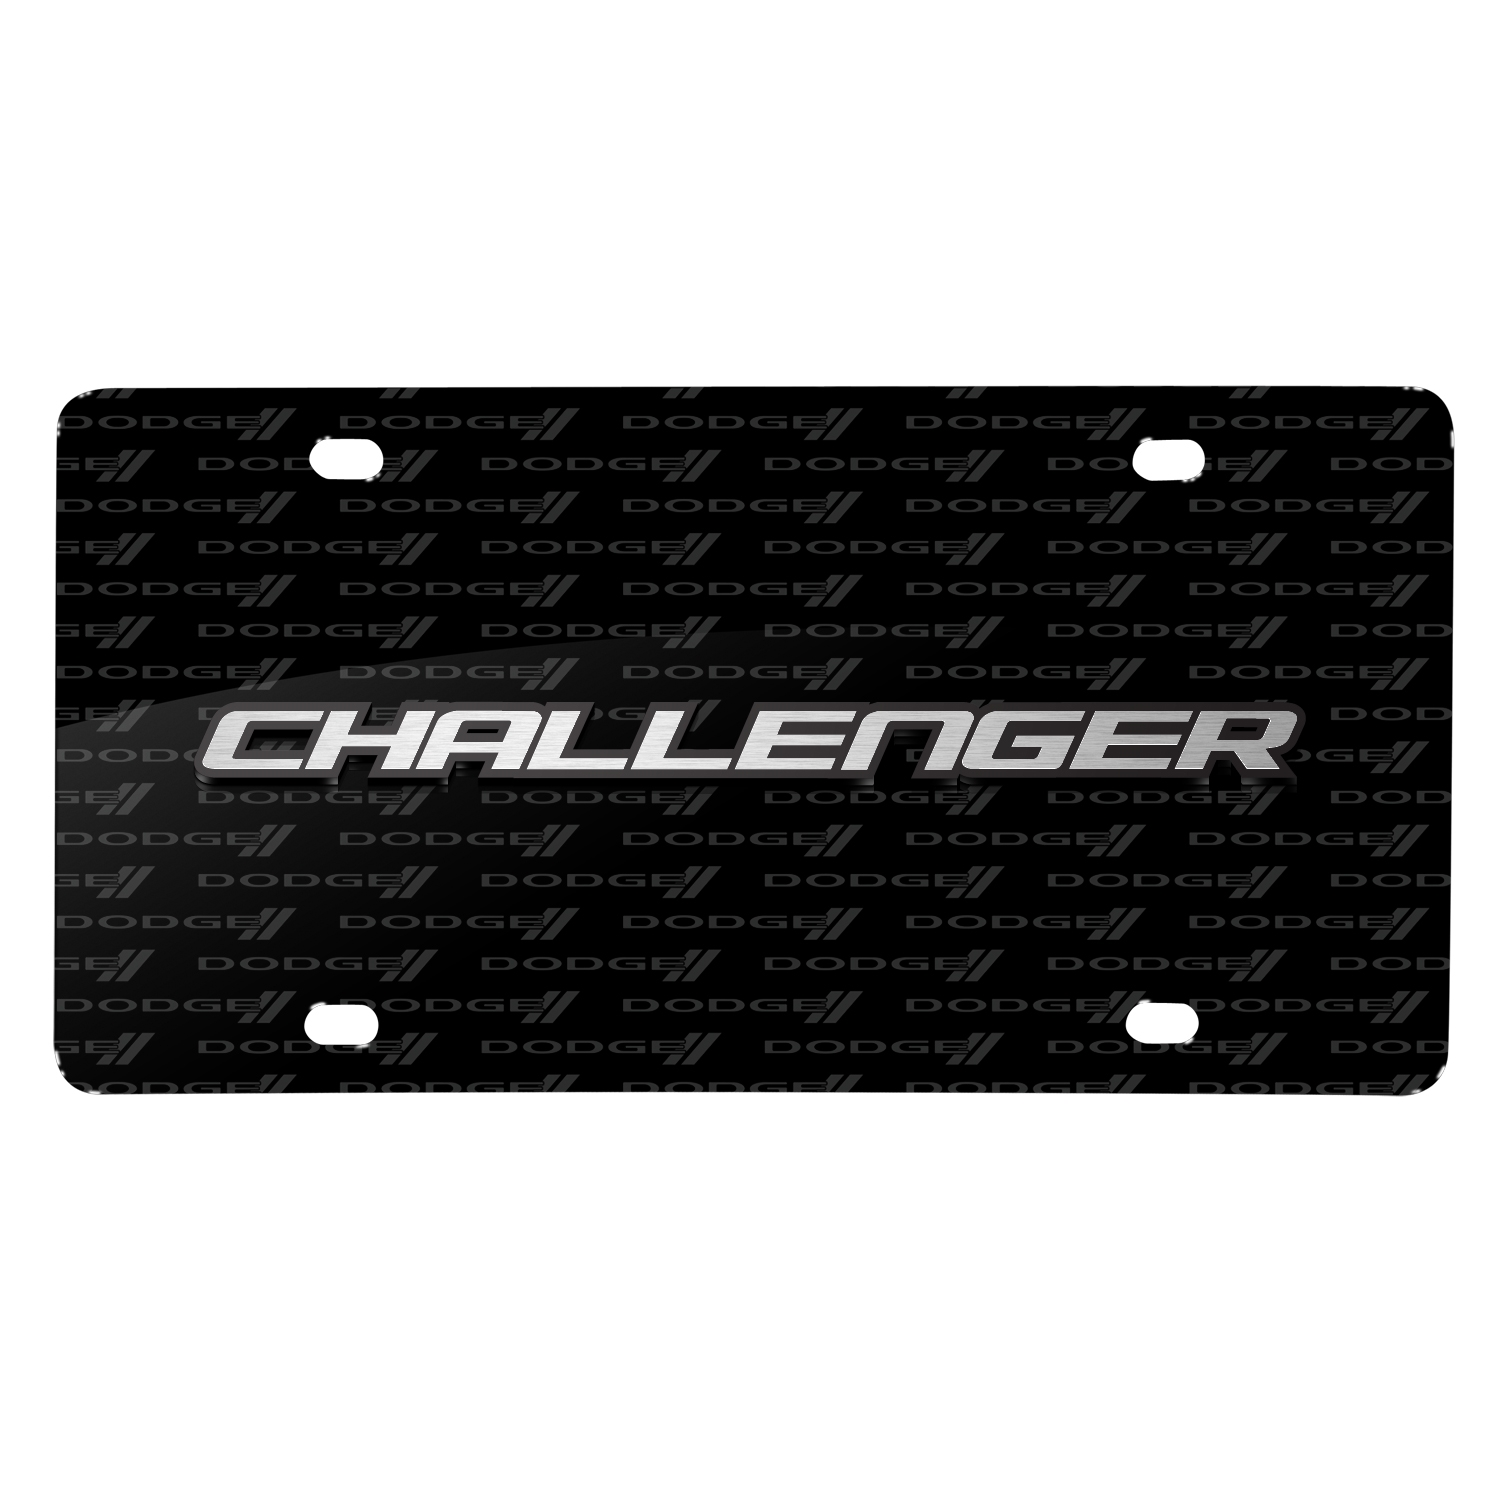 Dodge Challenger 3D Logo on Logo Pattern Black Aluminum License Plate